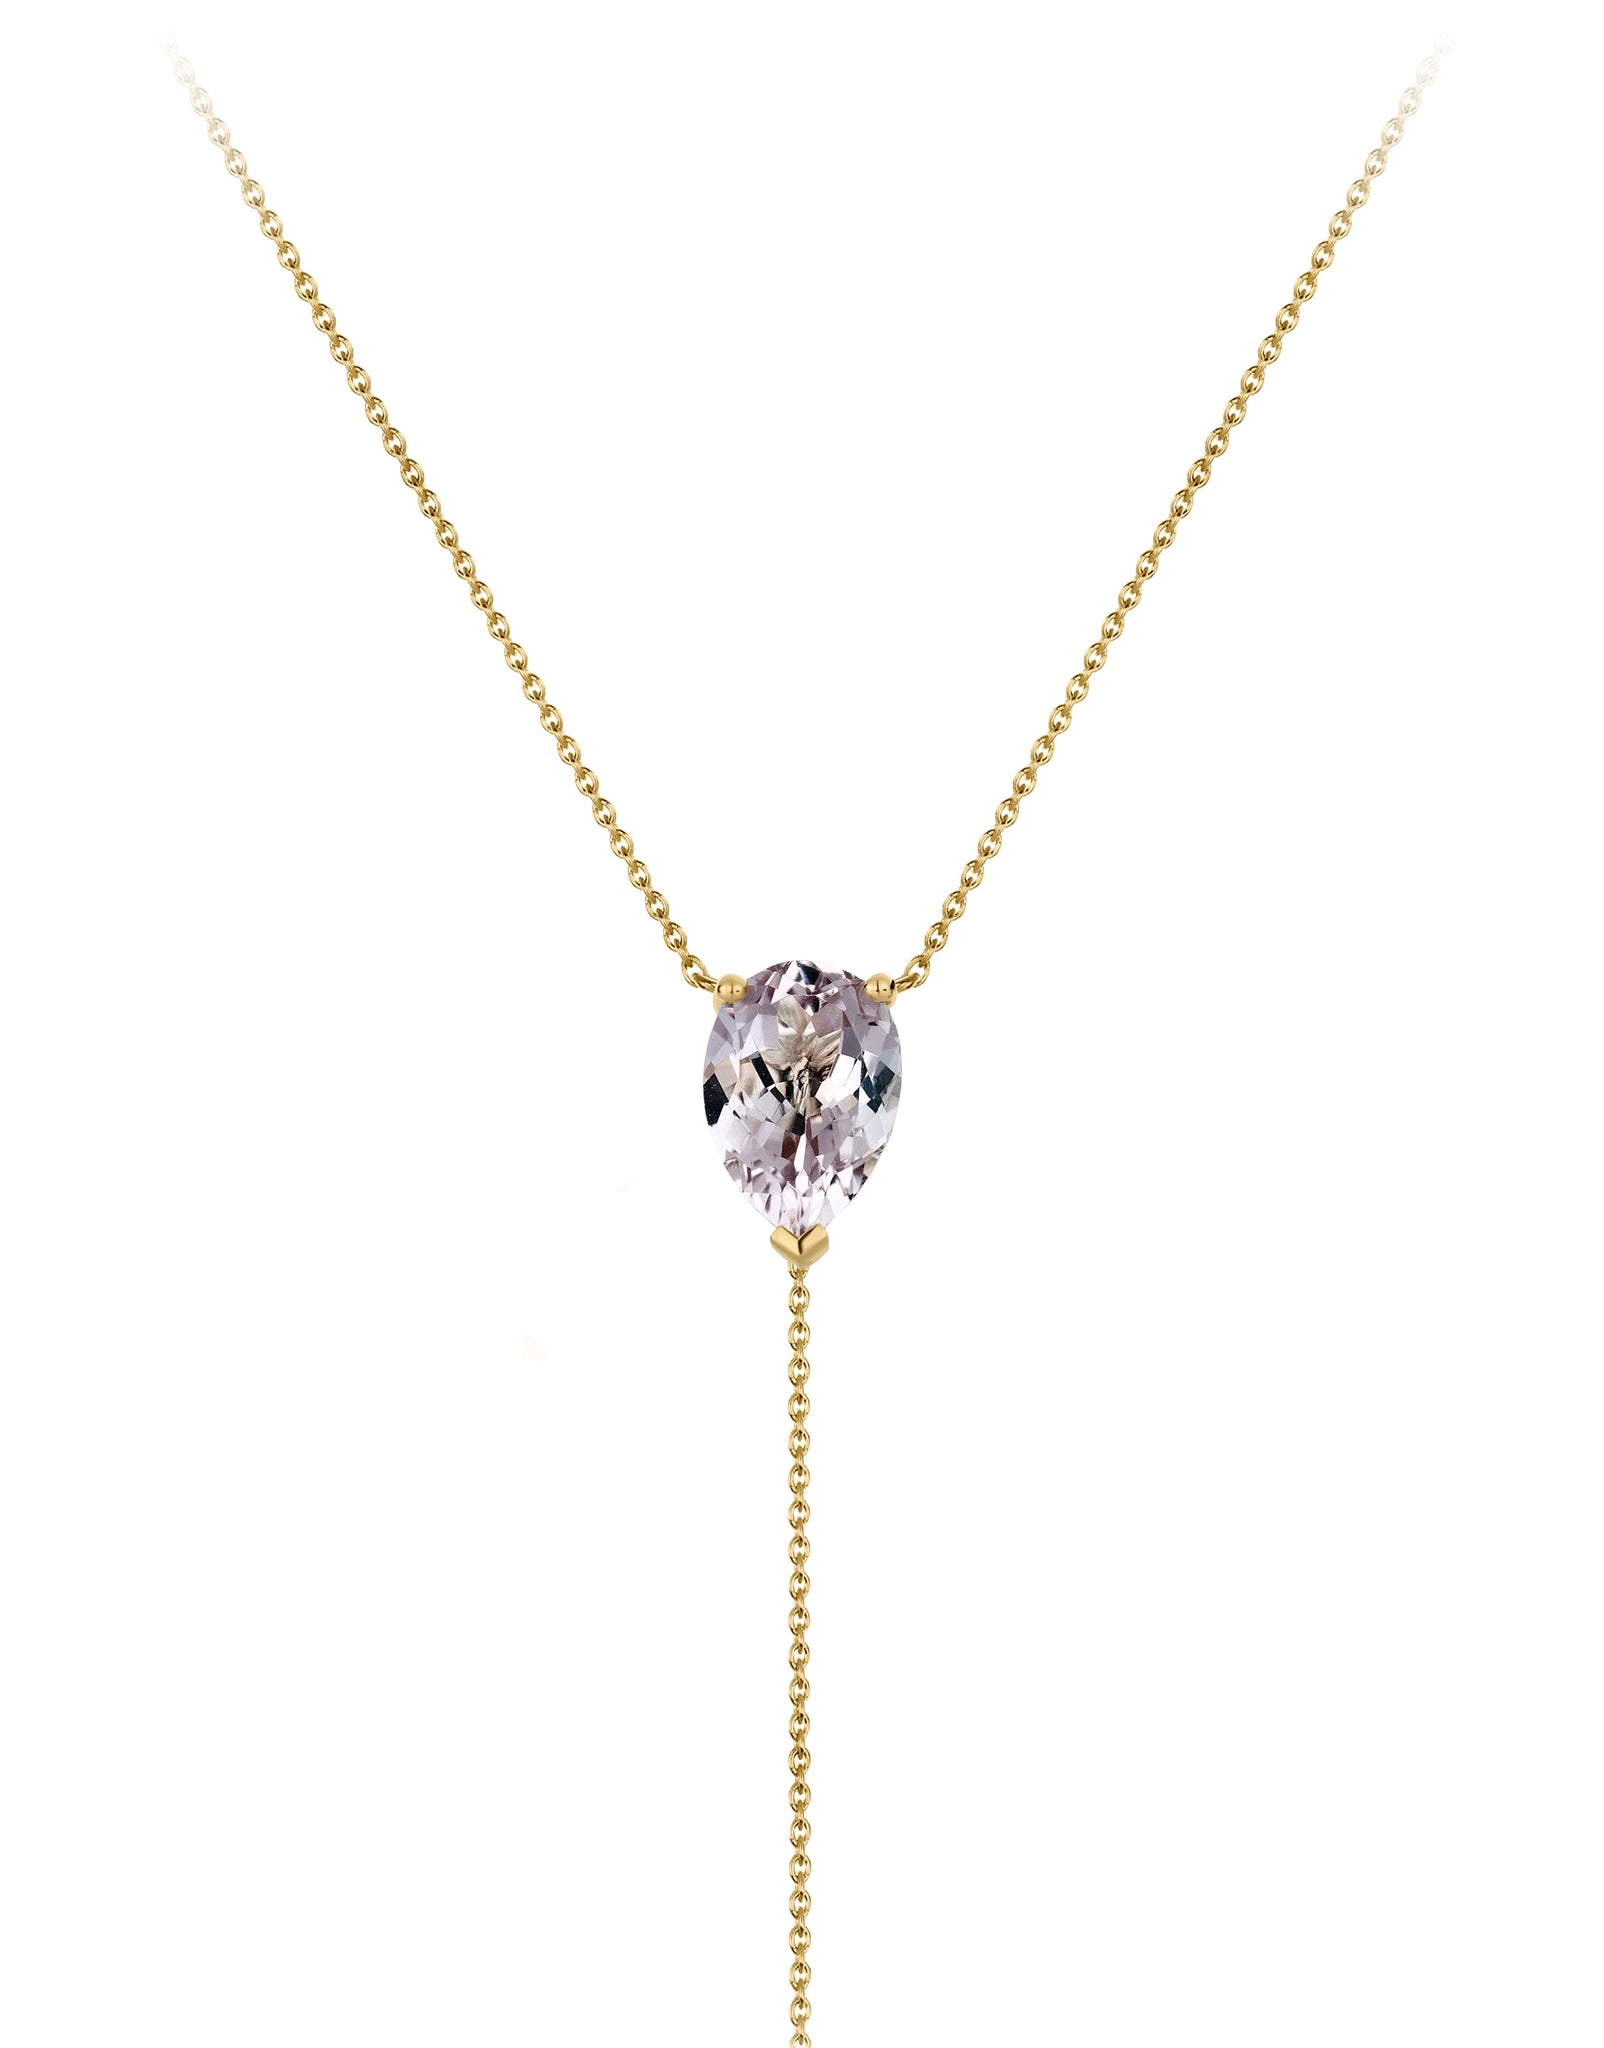 Necklace 9K gold amethyst - bloom necklace amethyst - Nayestones